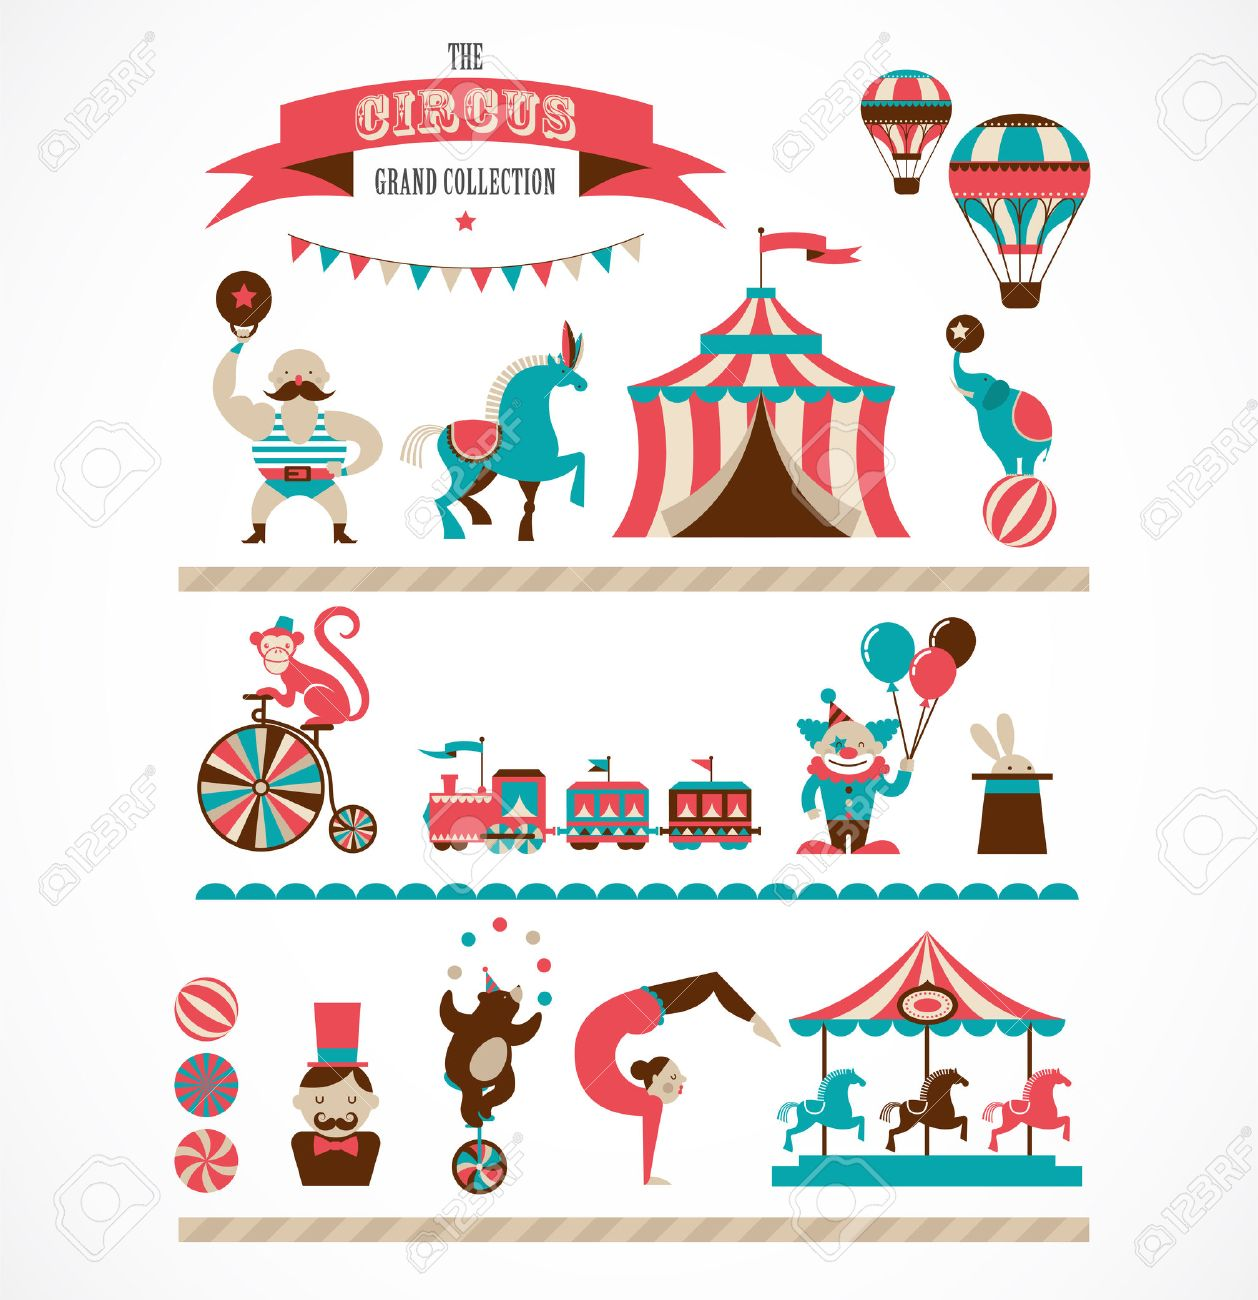 Carousel Images & Stock Pictures. Royalty Free Carousel Photos And ...